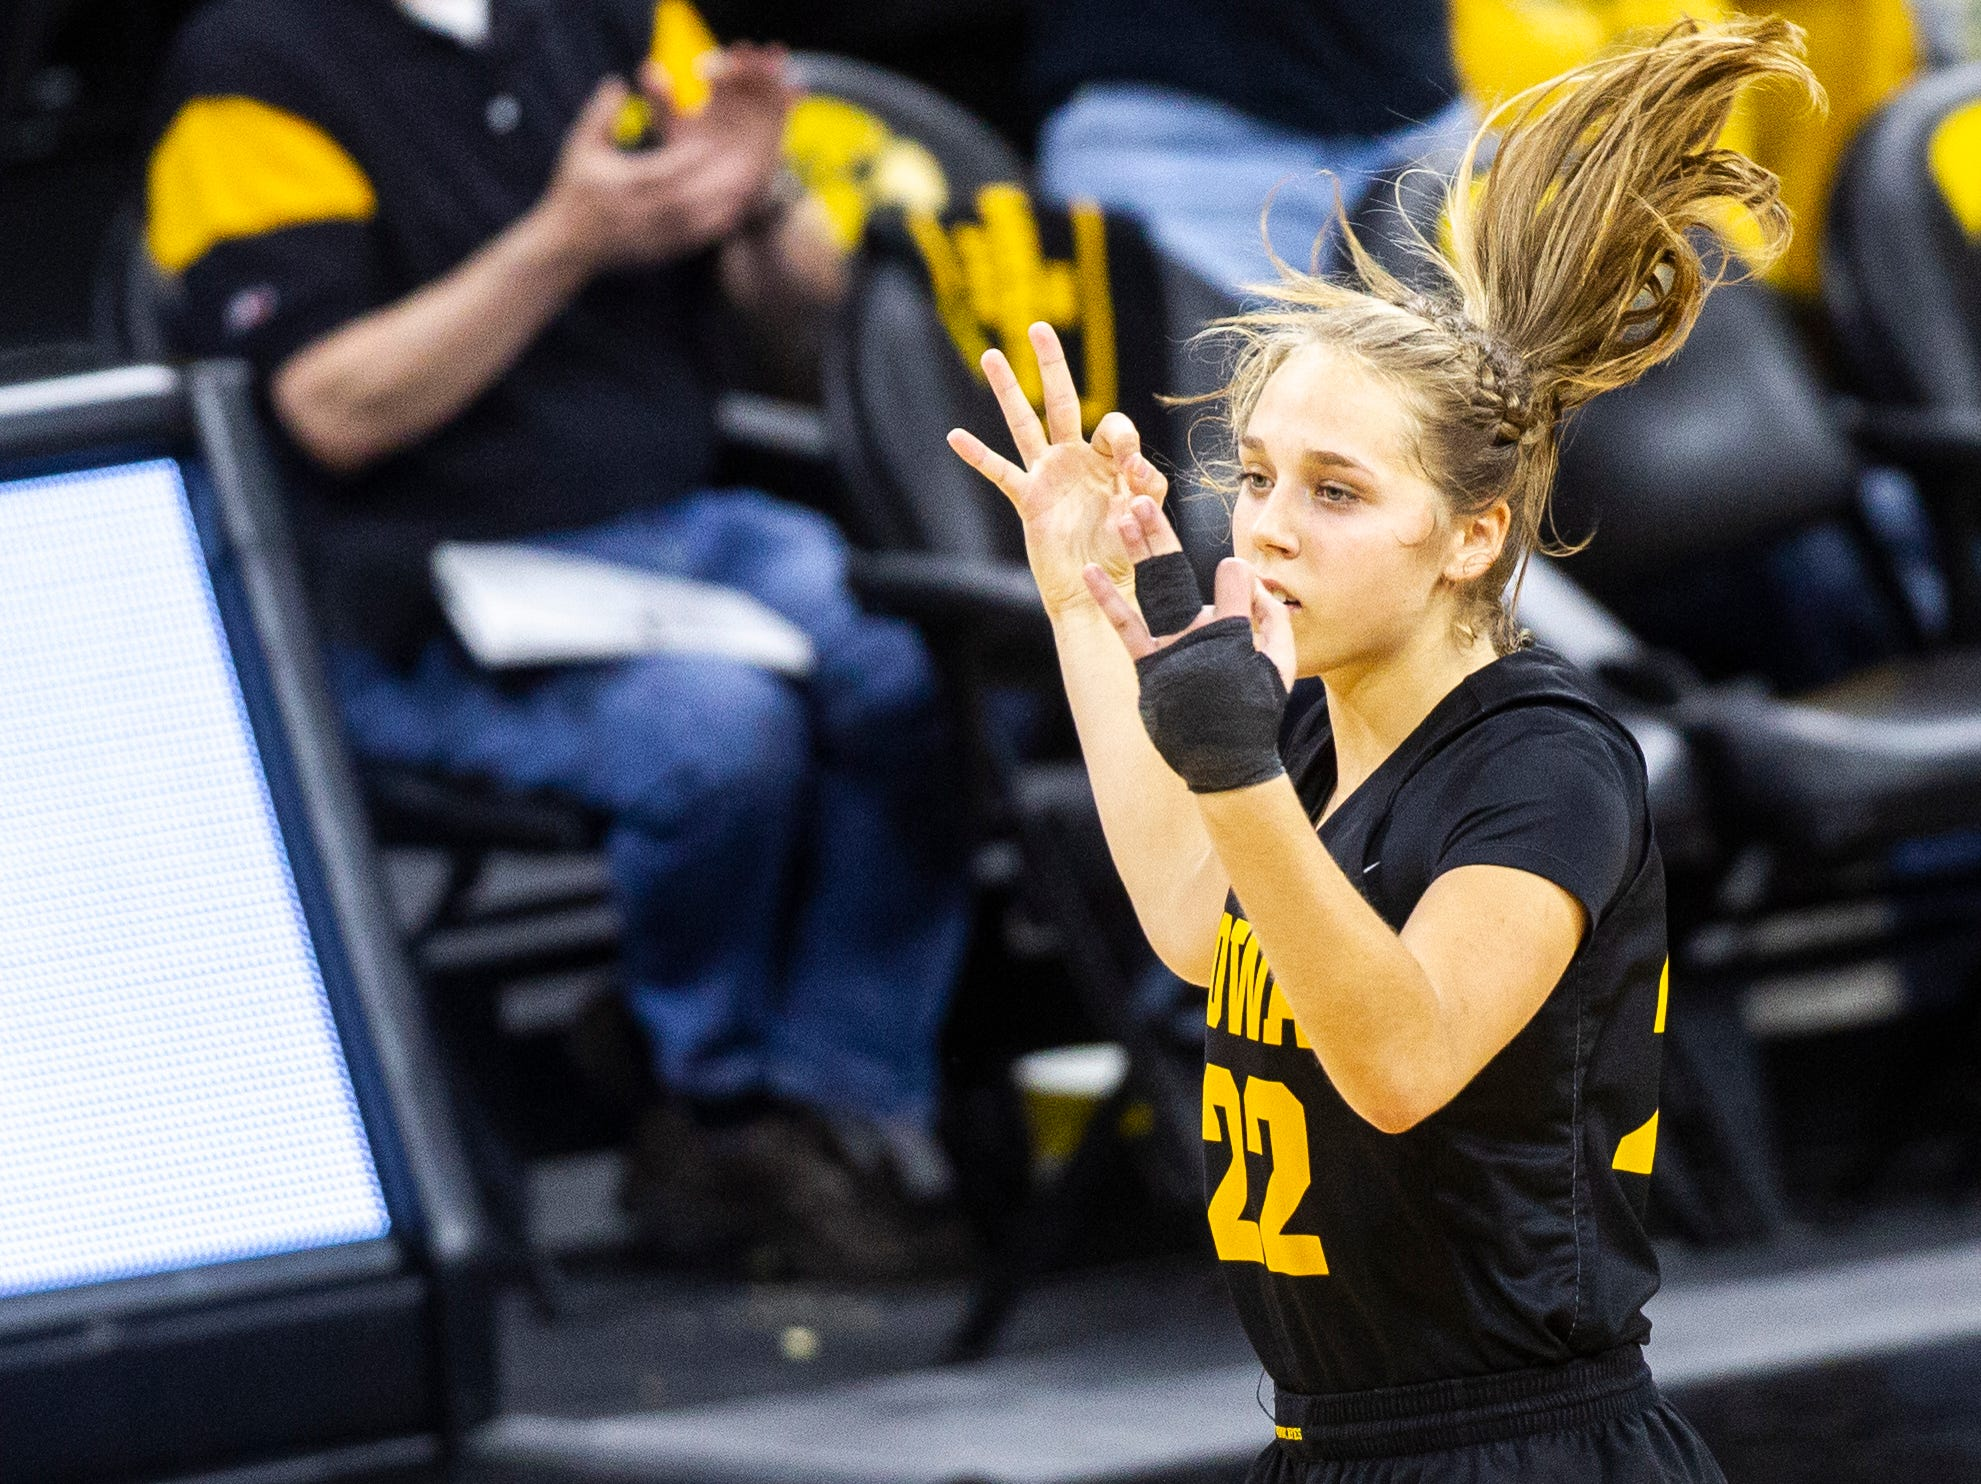 Iowa guard Kathleen Doyle (22) celebrates after making a 3-point basket during a Cy-Hawk series NCAA women's basketball game on Wednesday, Dec. 5, 2018, at Carver-Hawkeye Arena in Iowa City.